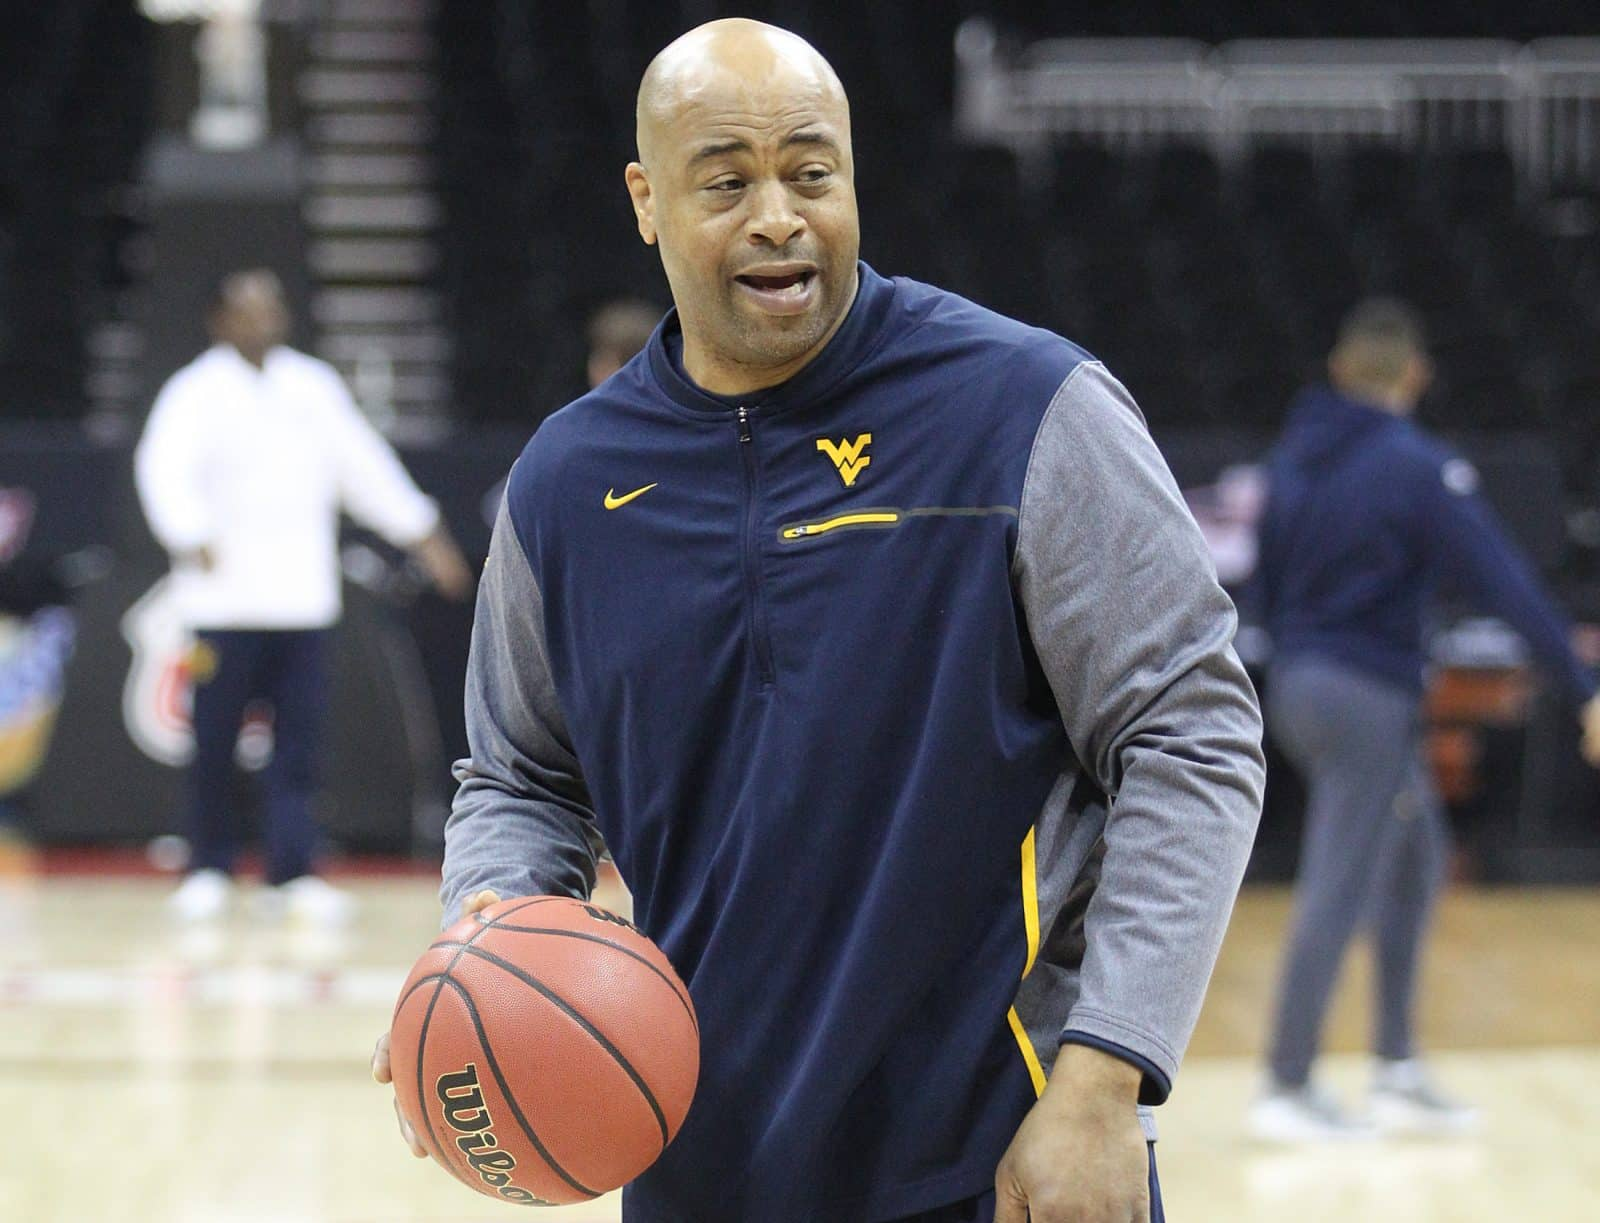 NCAA tournament preview: No. 5 West Virginia